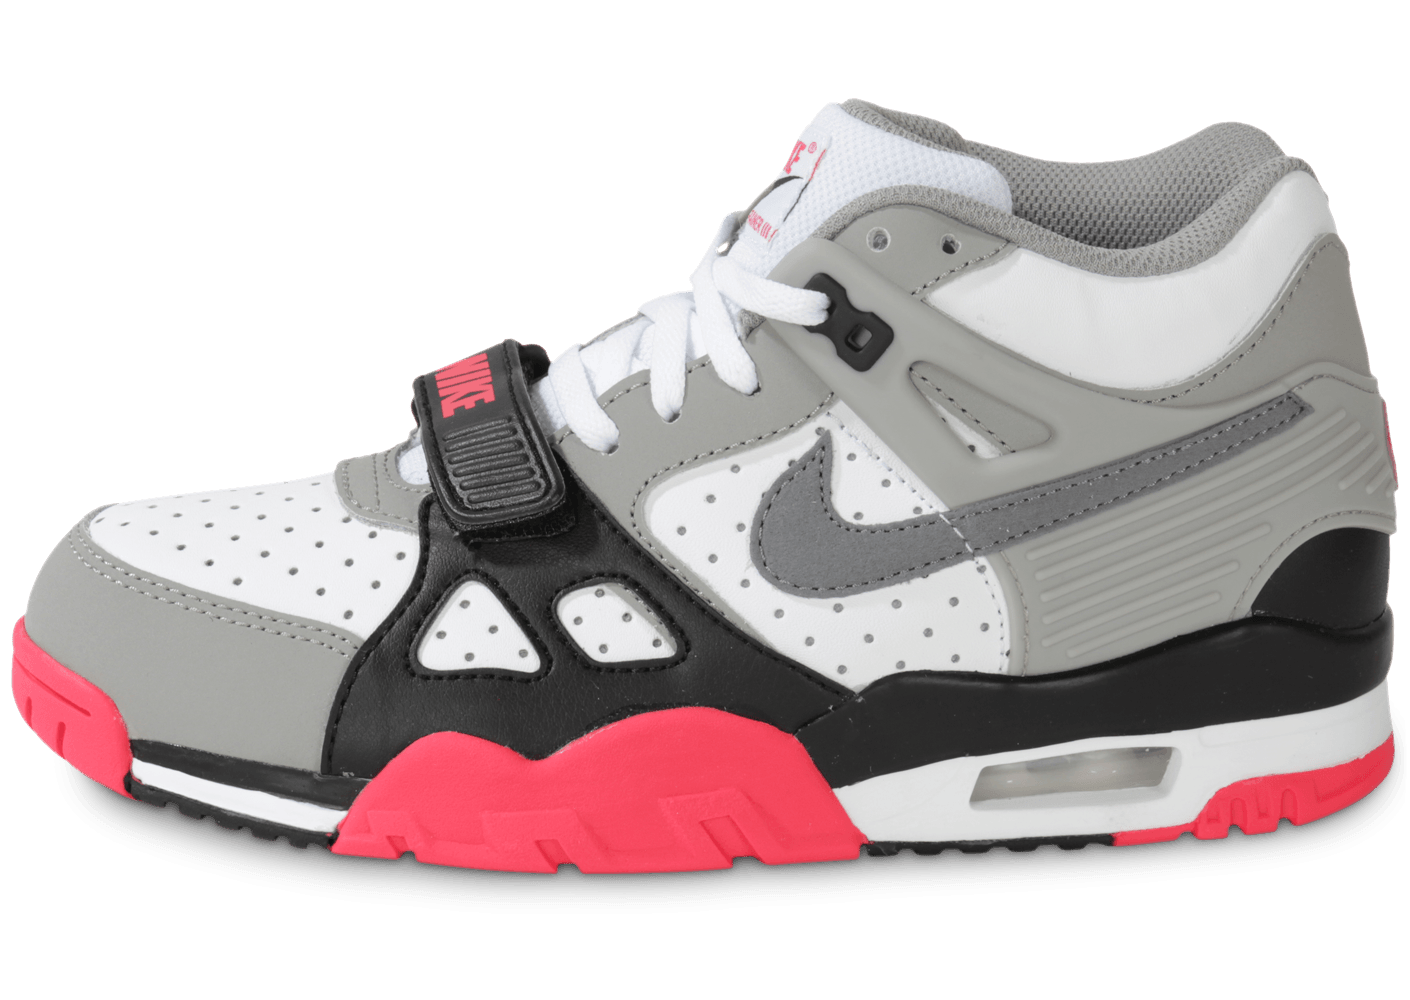 Nike Air Trainer 3 Junior Blanche Et Grise